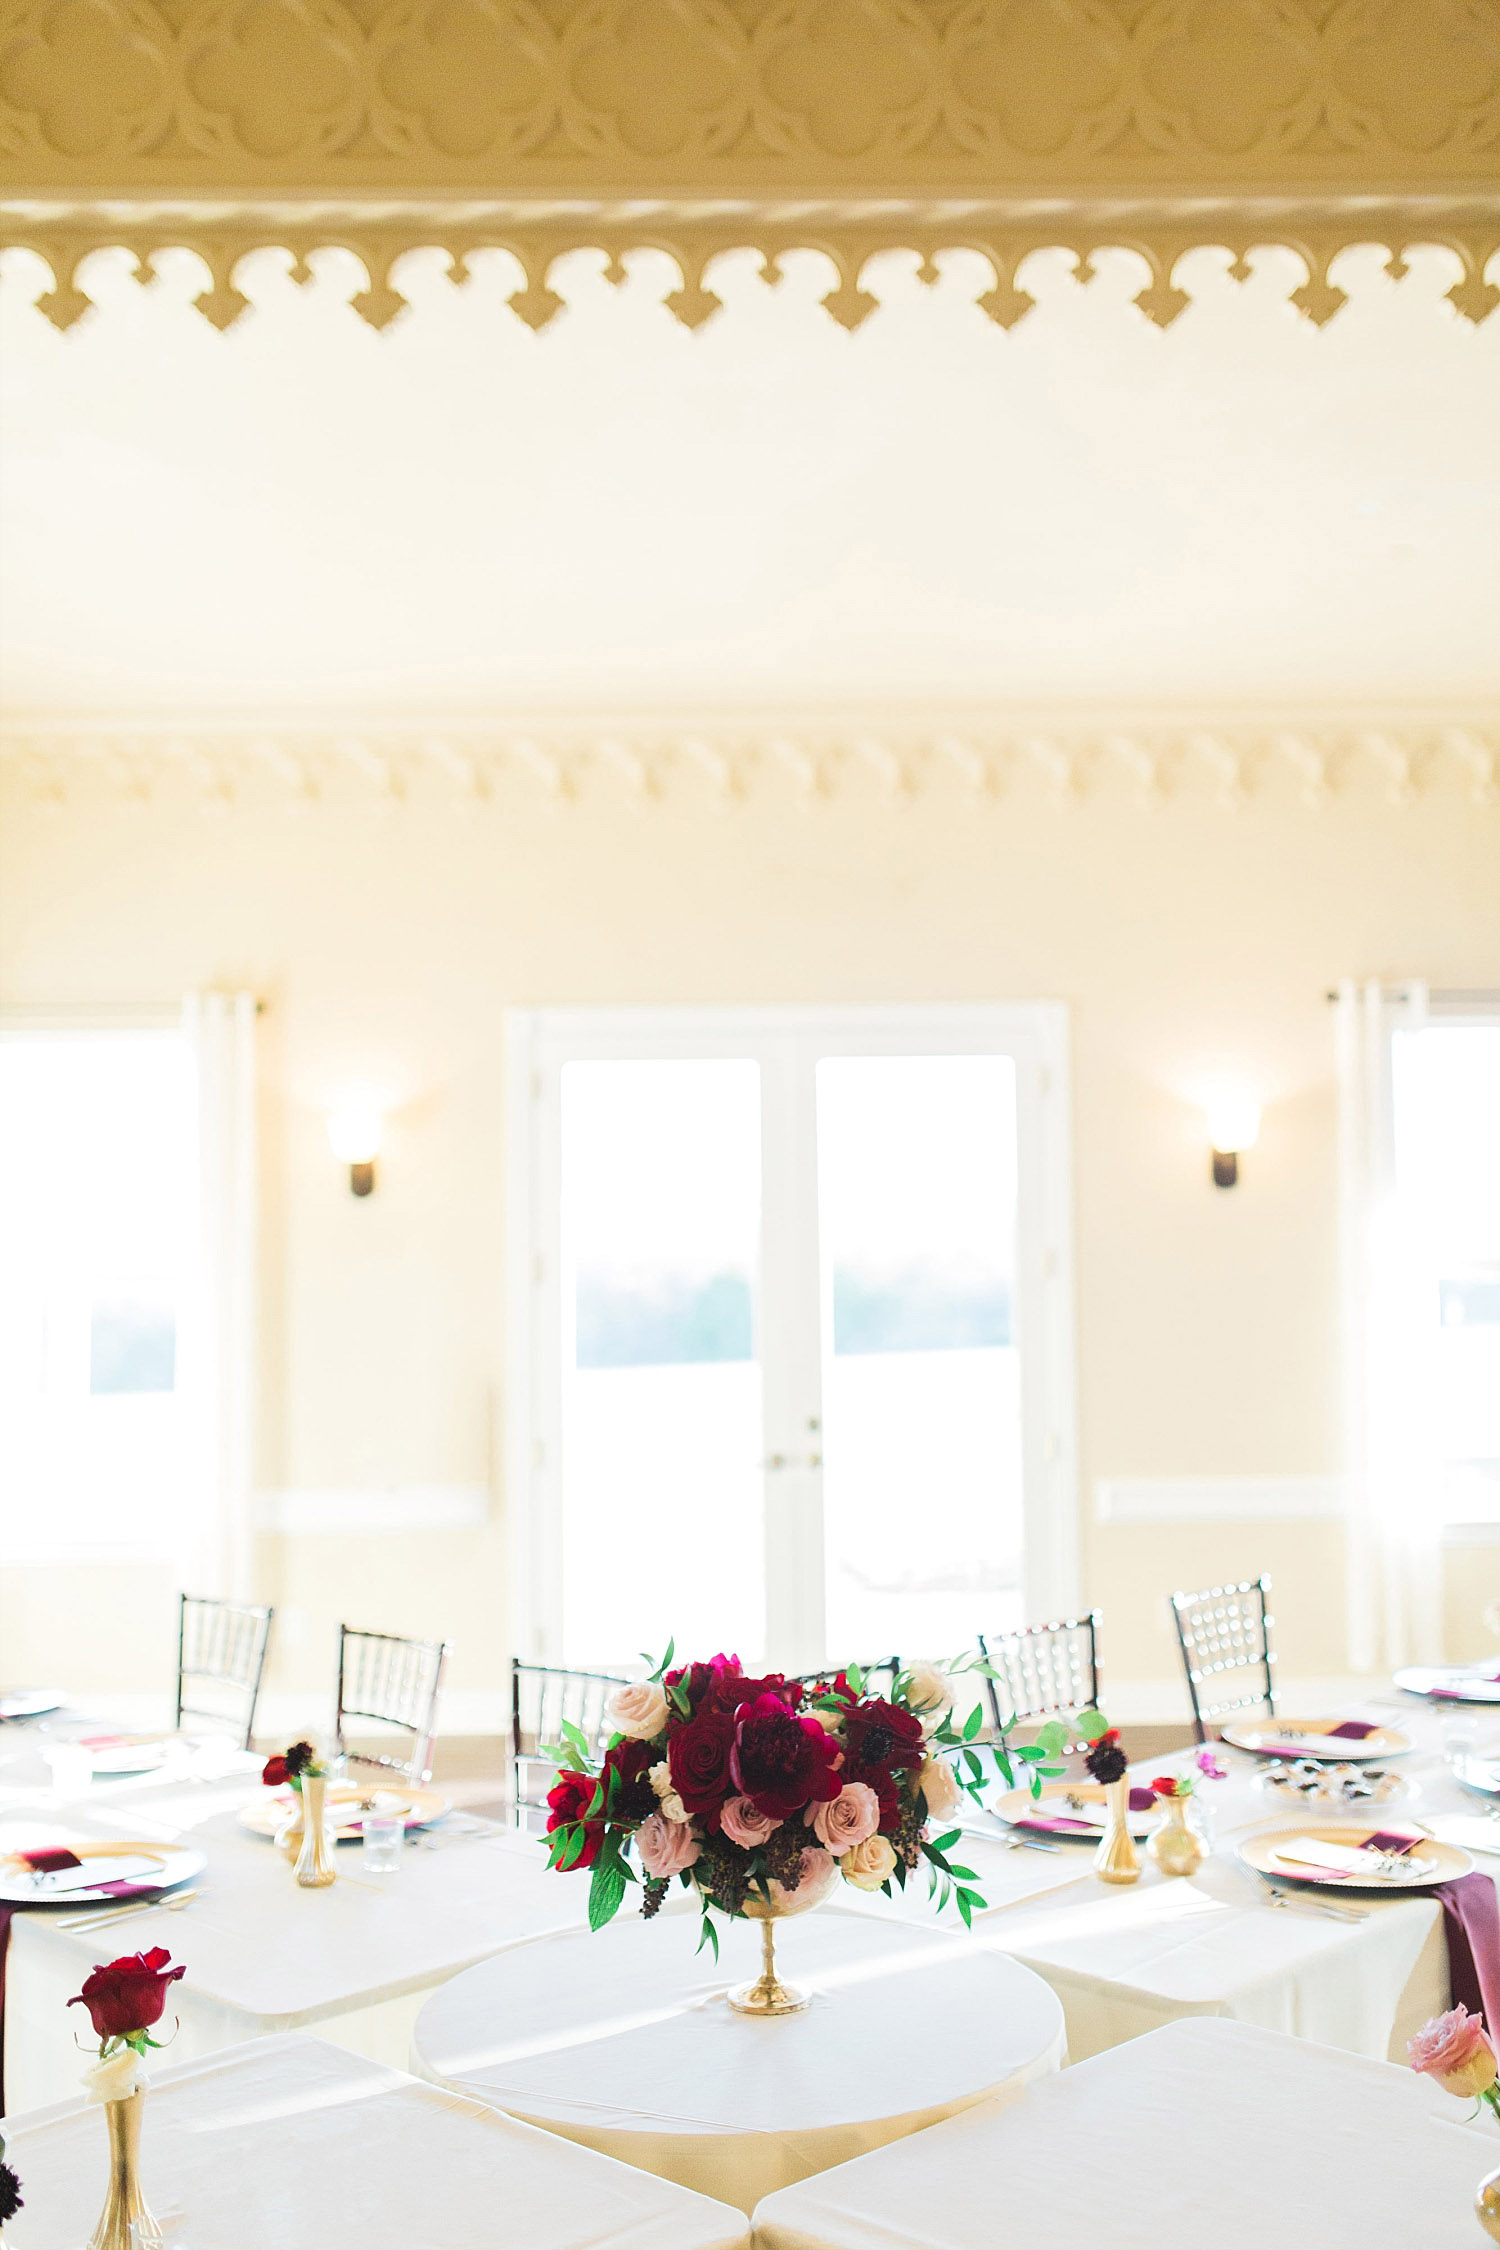 Castle at Rockwall wedding banquet room with red flowers